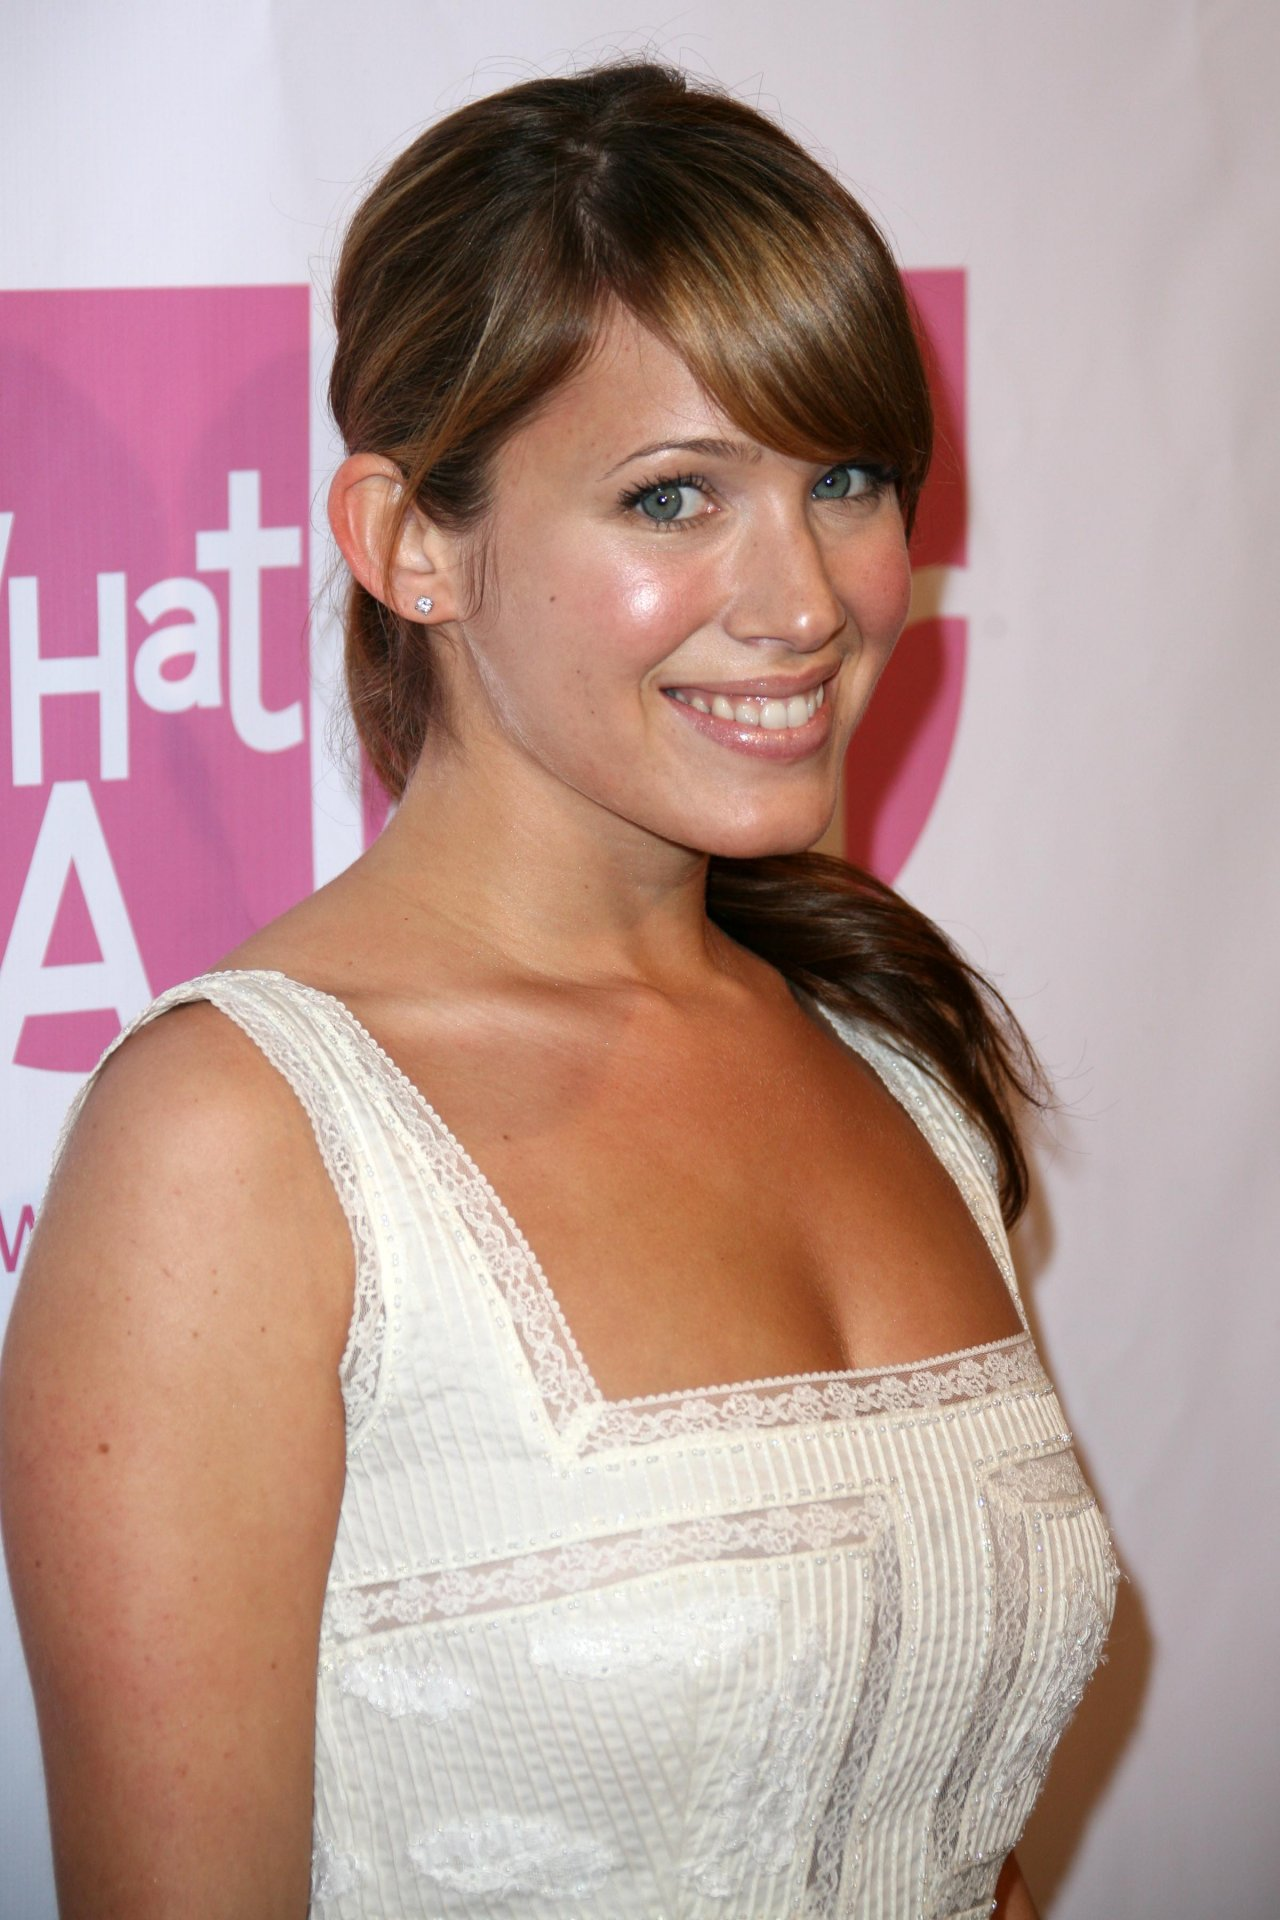 Seems me, Marla sokoloff boob commit